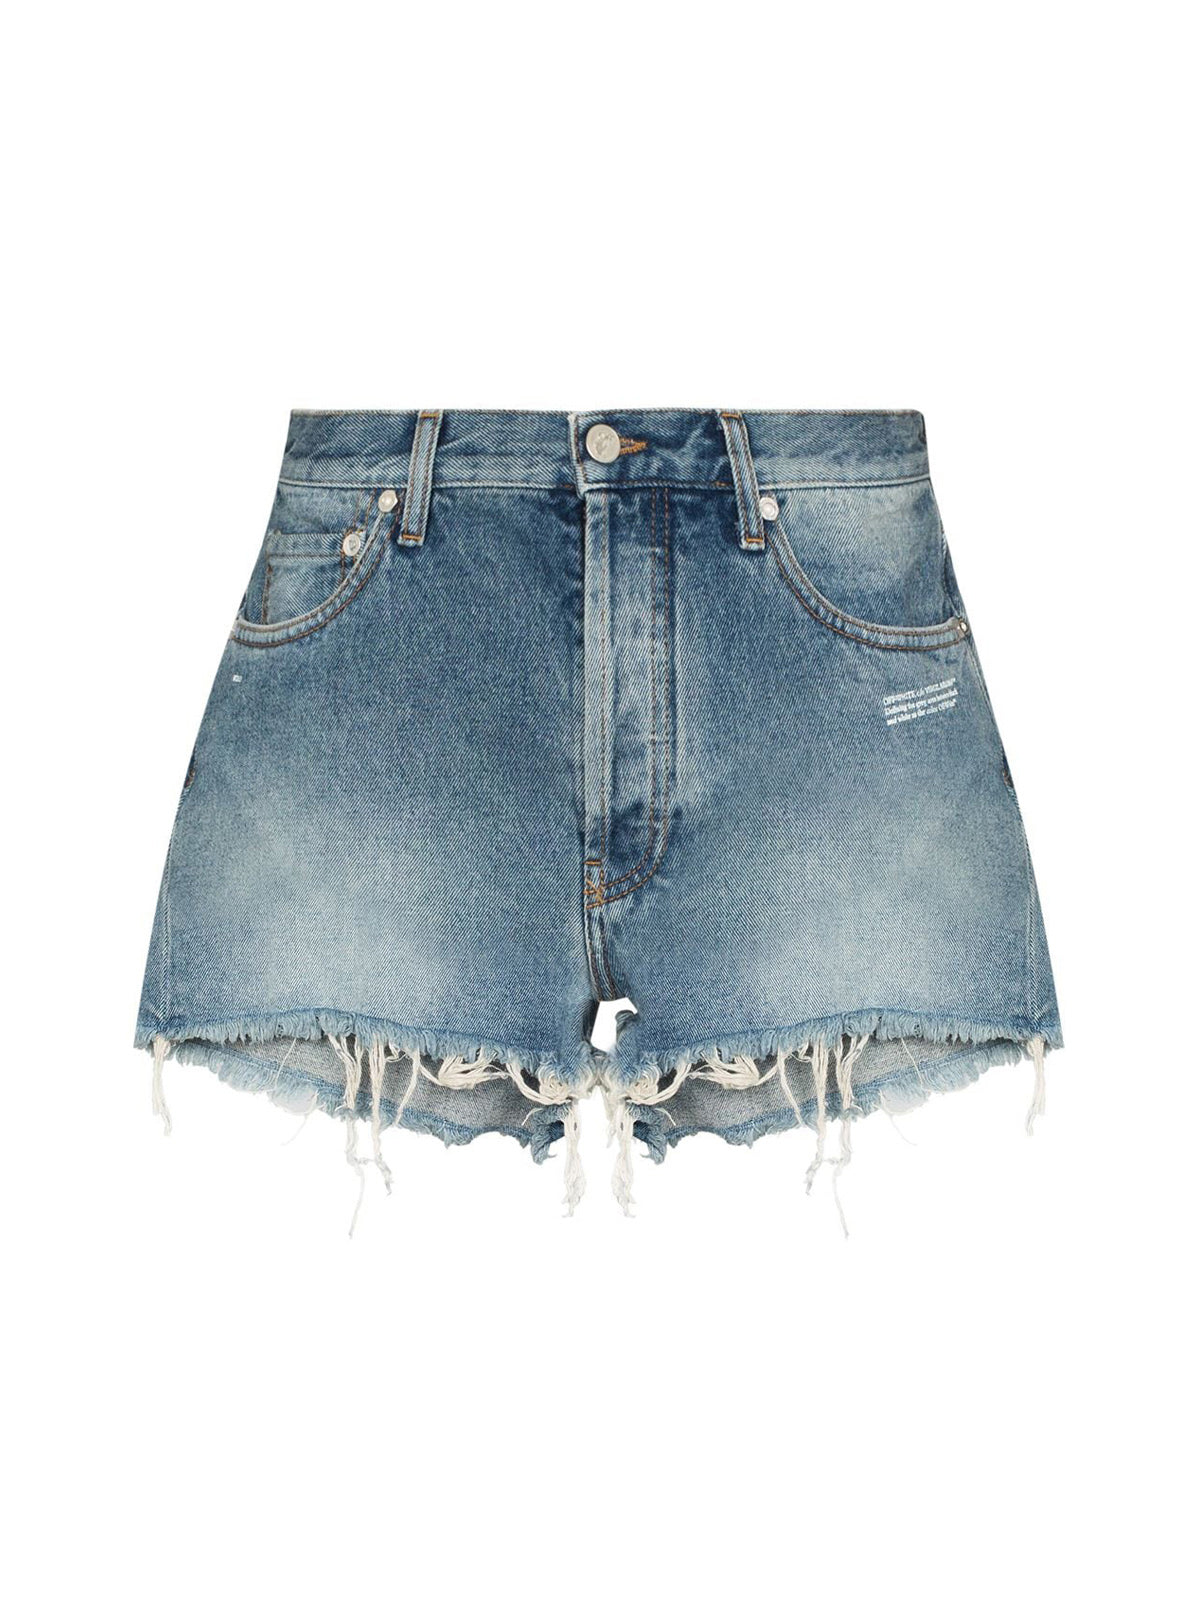 raw-hem denim shorts